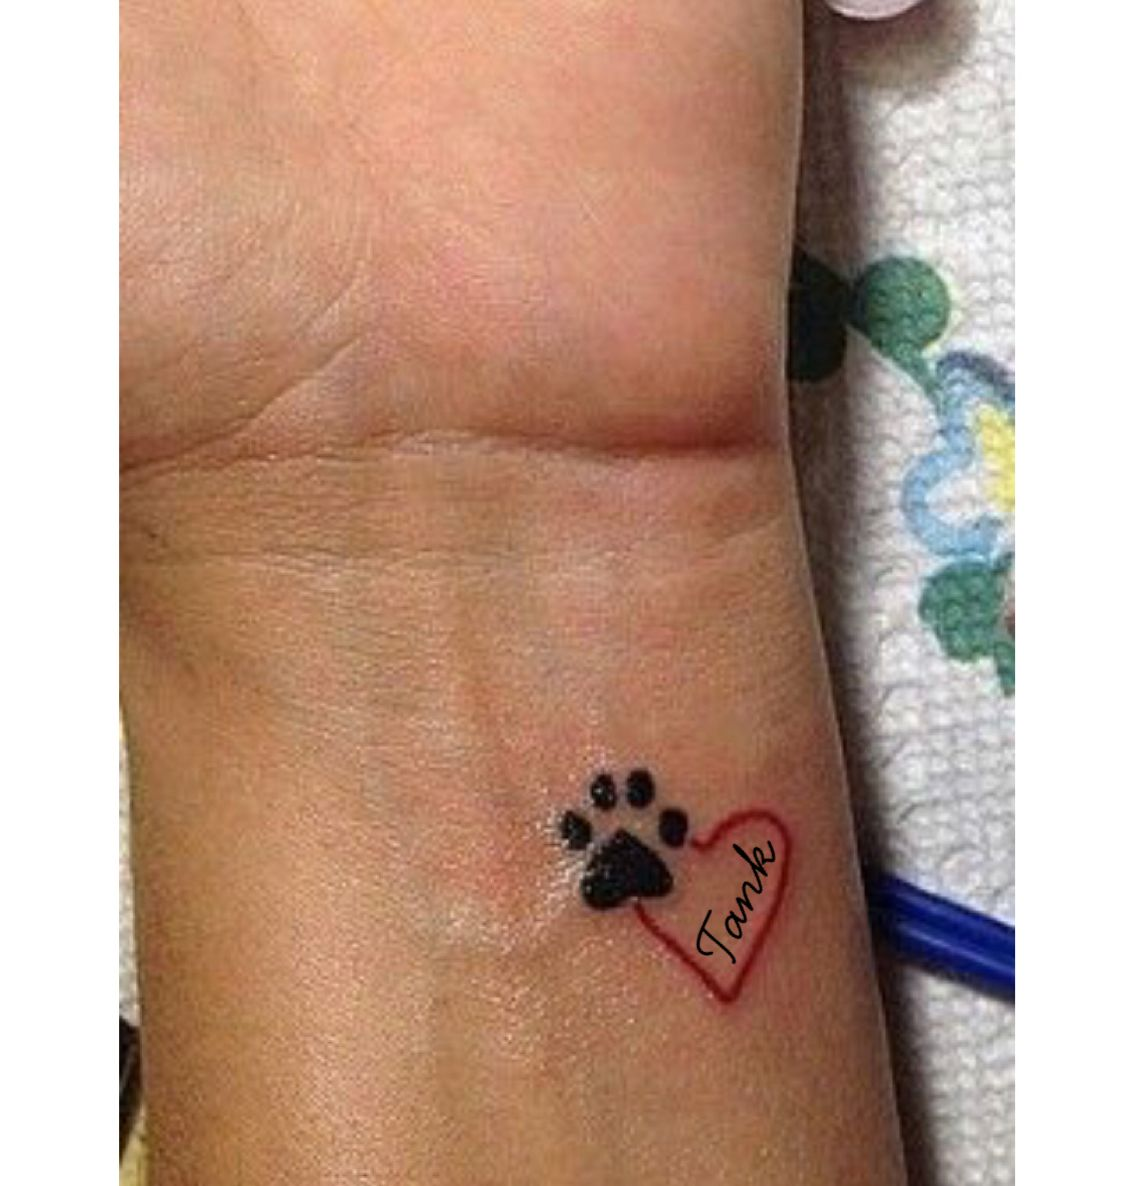 Paw Print Toe Tattoo: IF I Ever Considered Getting A Tattoo...